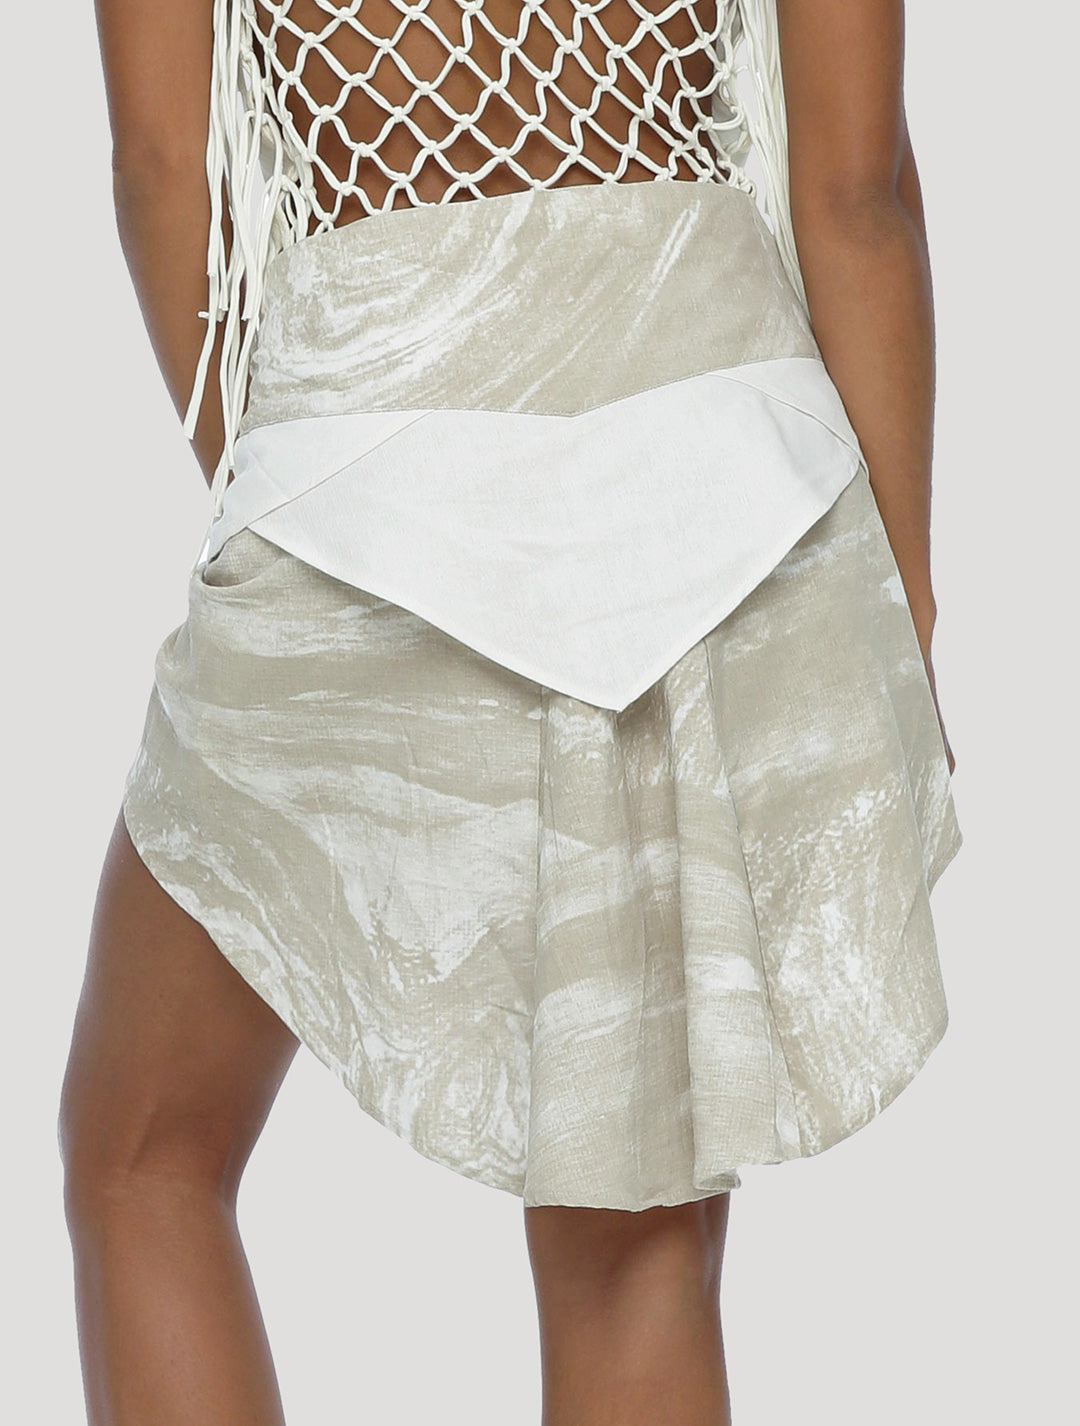 Chic Wraparound Skirt - Psylo Fashion